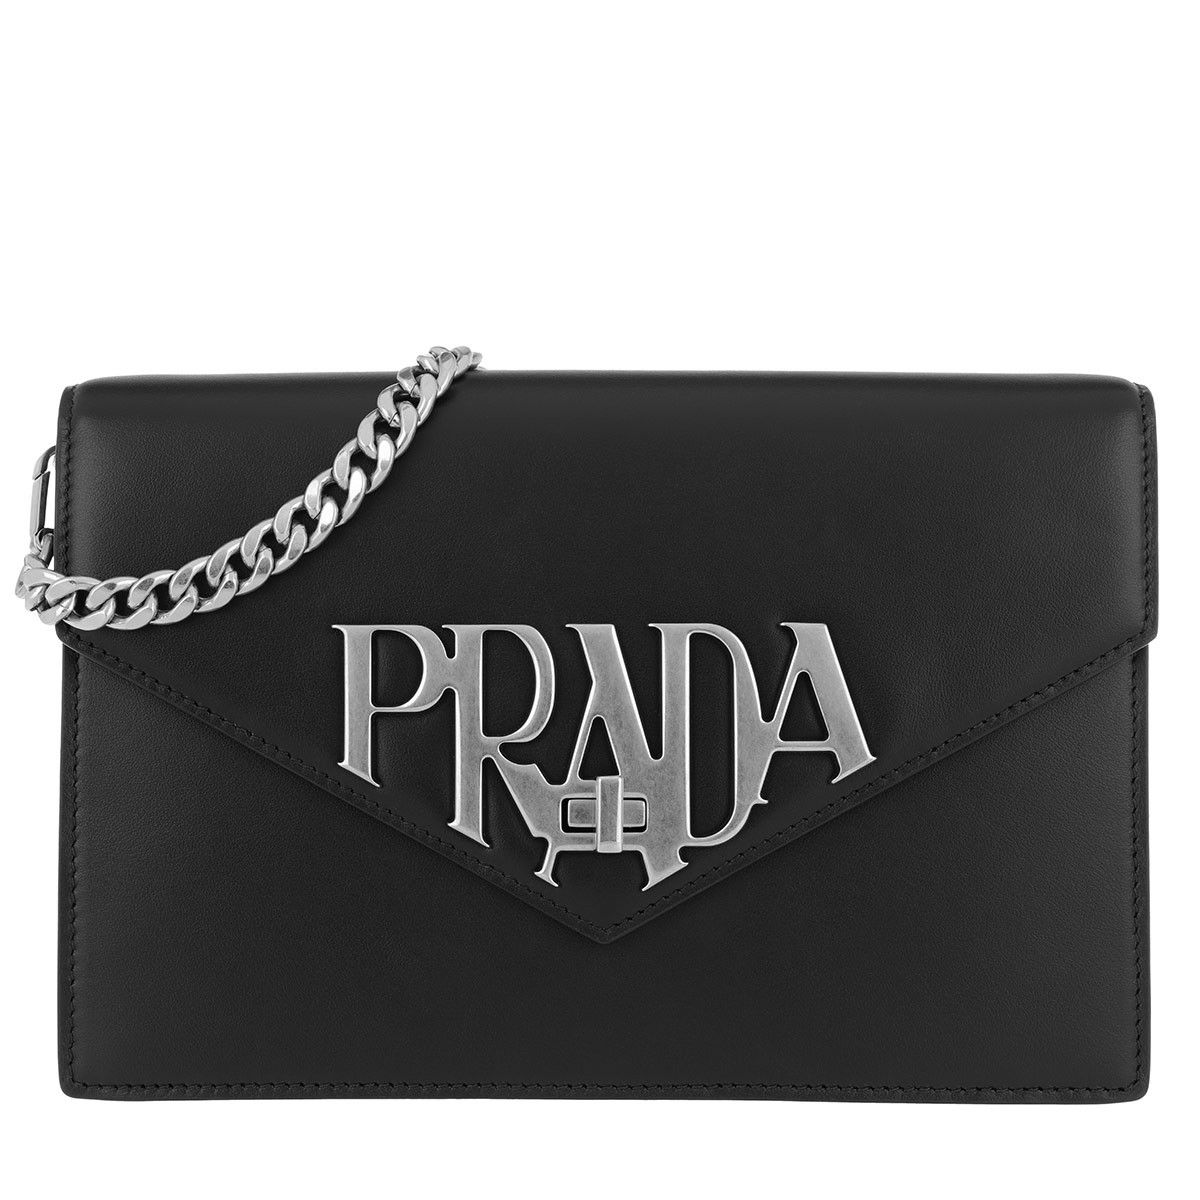 Prada Logo - Prada Logo Crossbody Bag Smooth Leather Black in black | fashionette